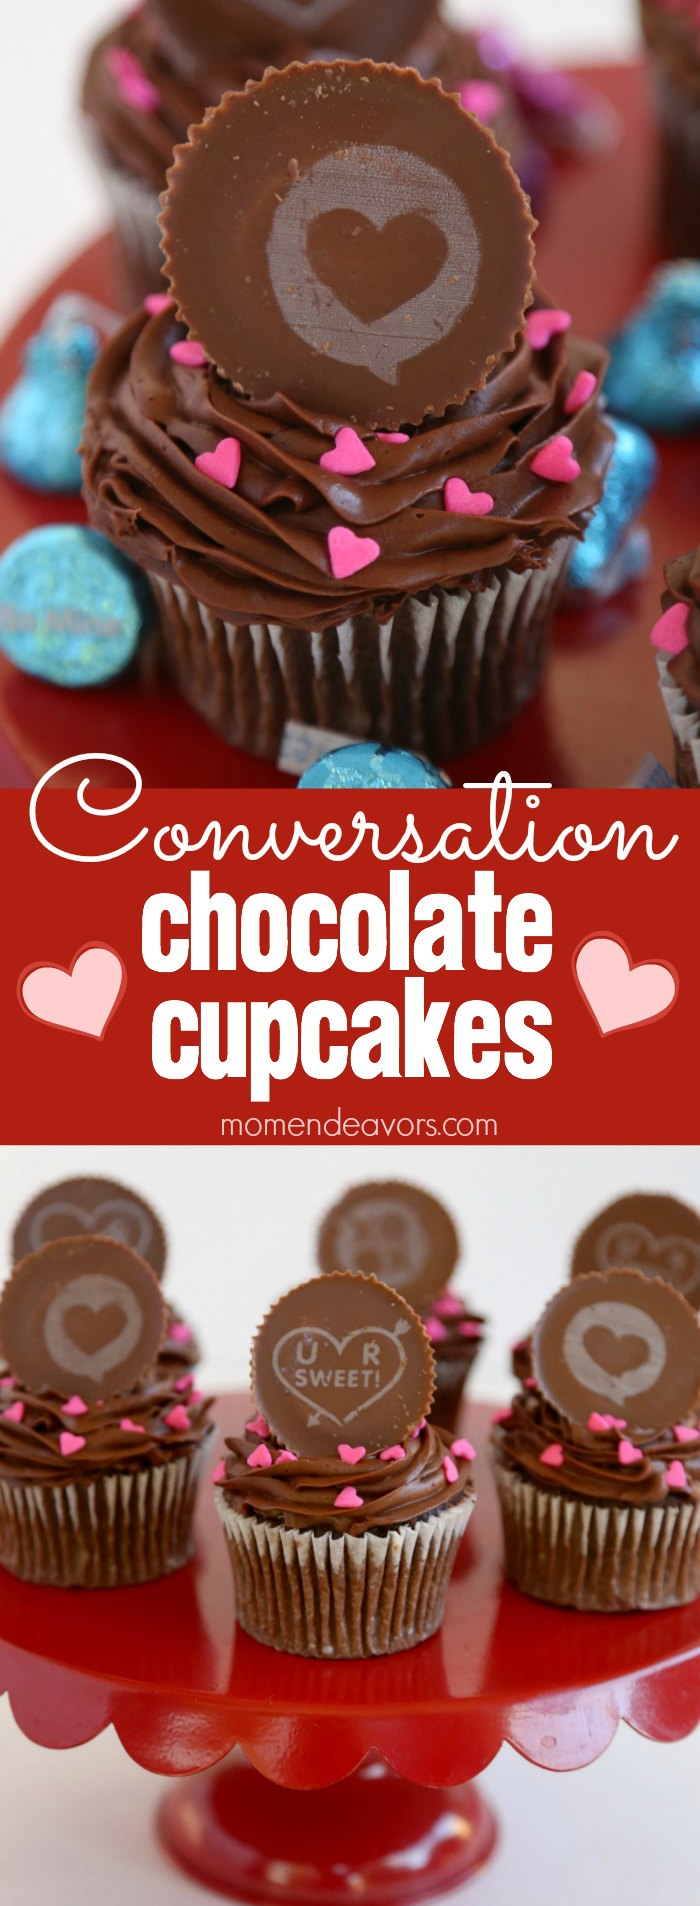 Conversation Hearts Chocolate Valentine's Cupcakes